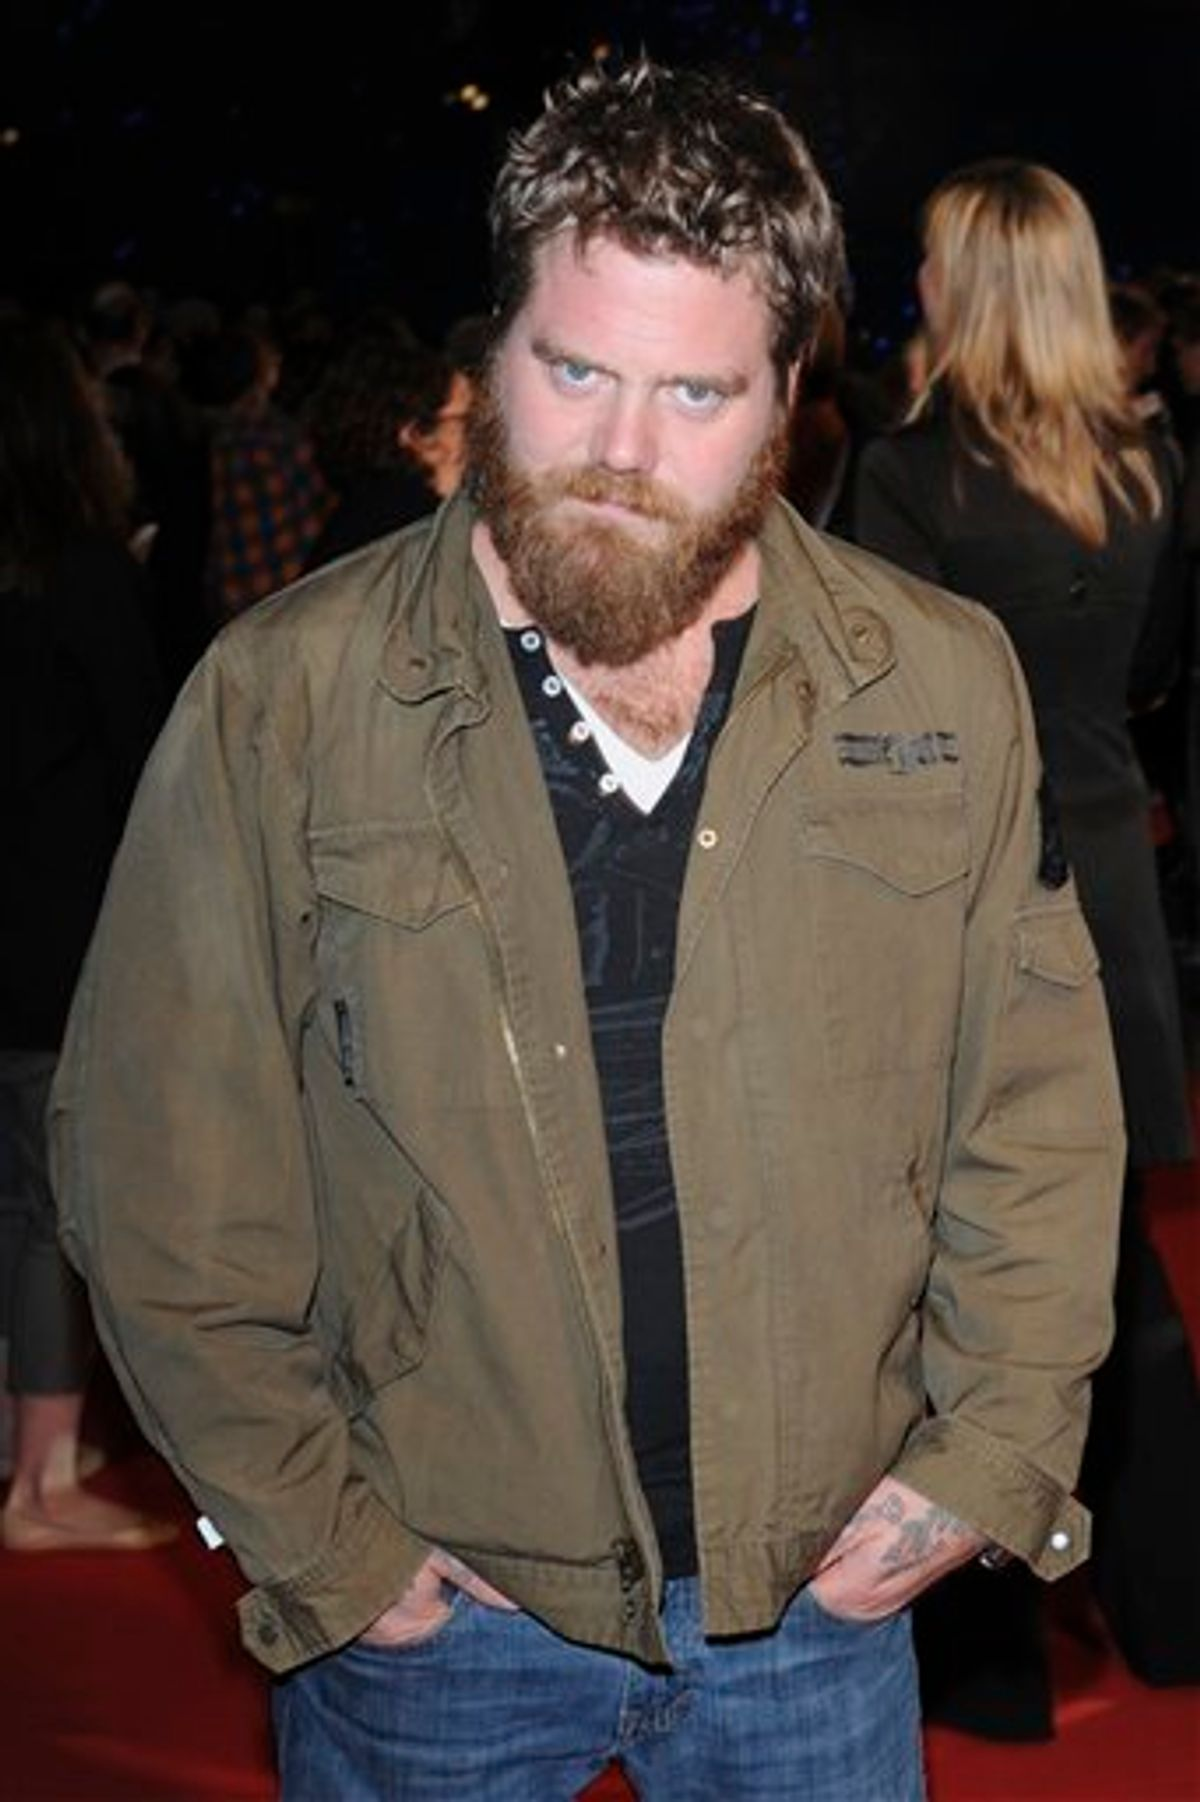 In this Nov. 2, 2010 photo, U.S reality television personality and daredevil Ryan Dunn attends the Jackass 3D UK Premiere at a central London cinema. Police say Dunn and a passenger in his 2007 Porsche died early Monday, June 20, 2011, of injuries sustained in a car crash in suburban Philadelphia. (AP Photo/dapd, Jorge Herrera) GERMANY OUT; AUSTRIA OUT; SWITZERLAND OUT (AP)